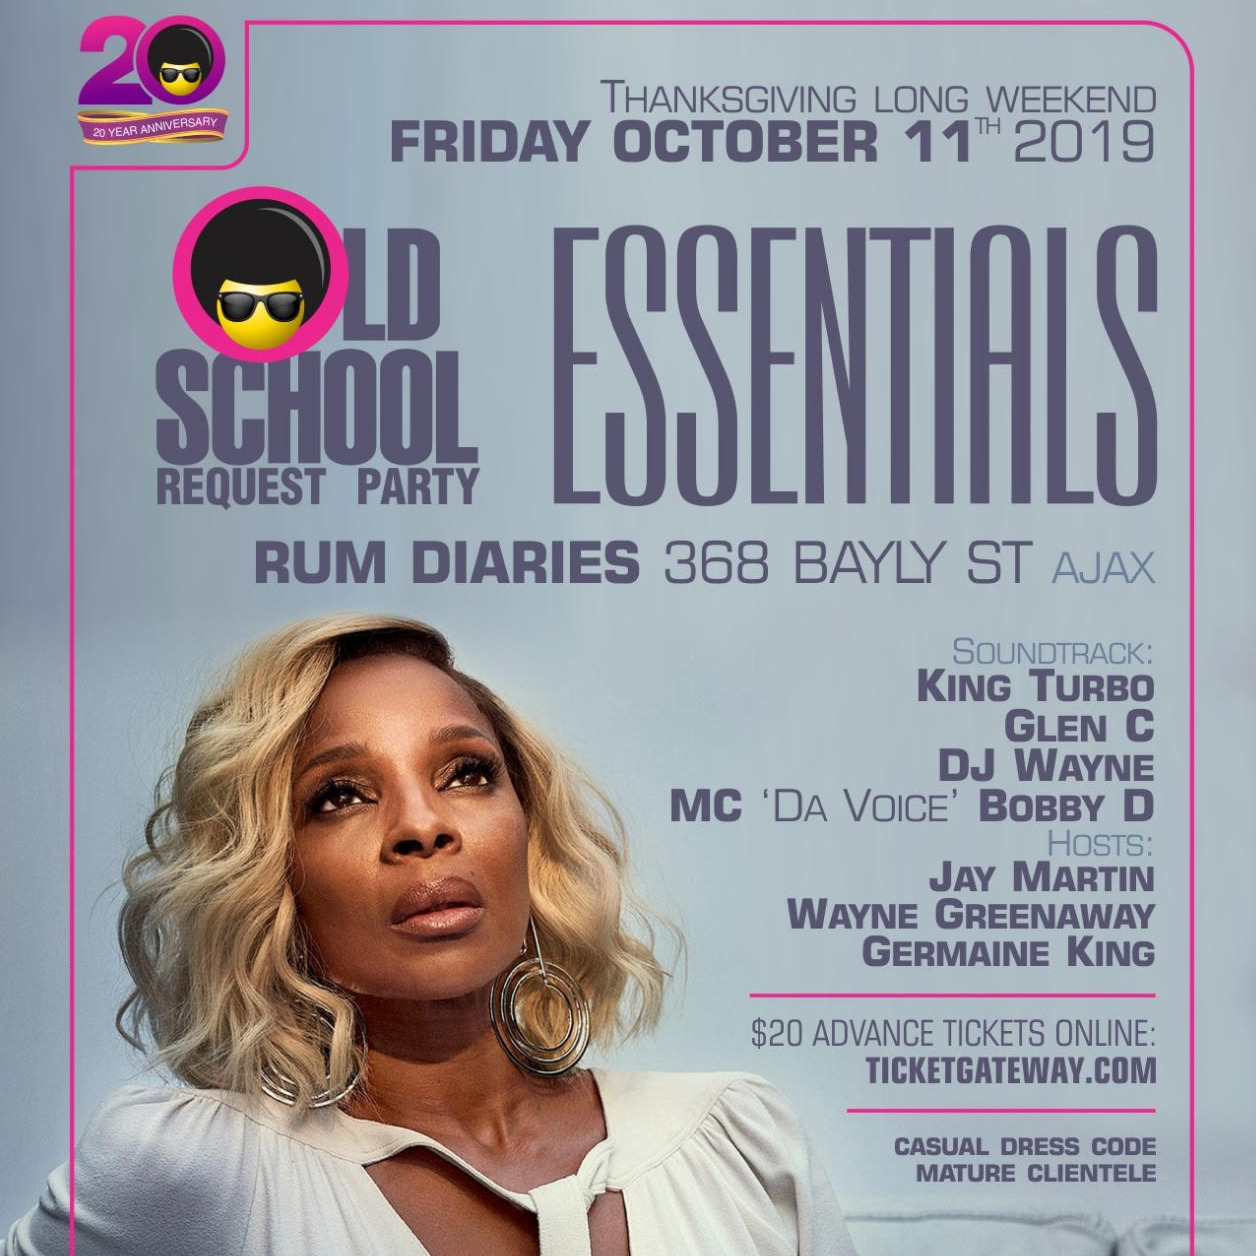 Old School Request Party - Essentials